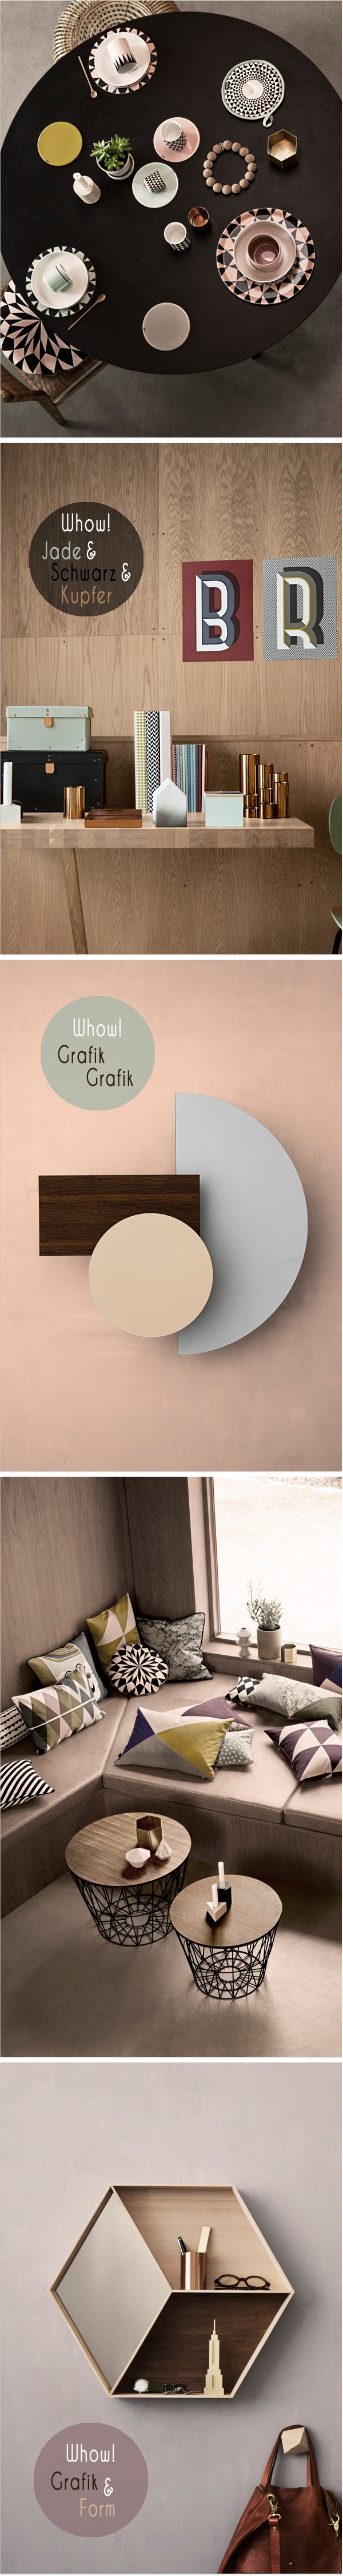 Living with Graphic | Ferm Living Collection AW 2013 http://www.de.fermliving.com